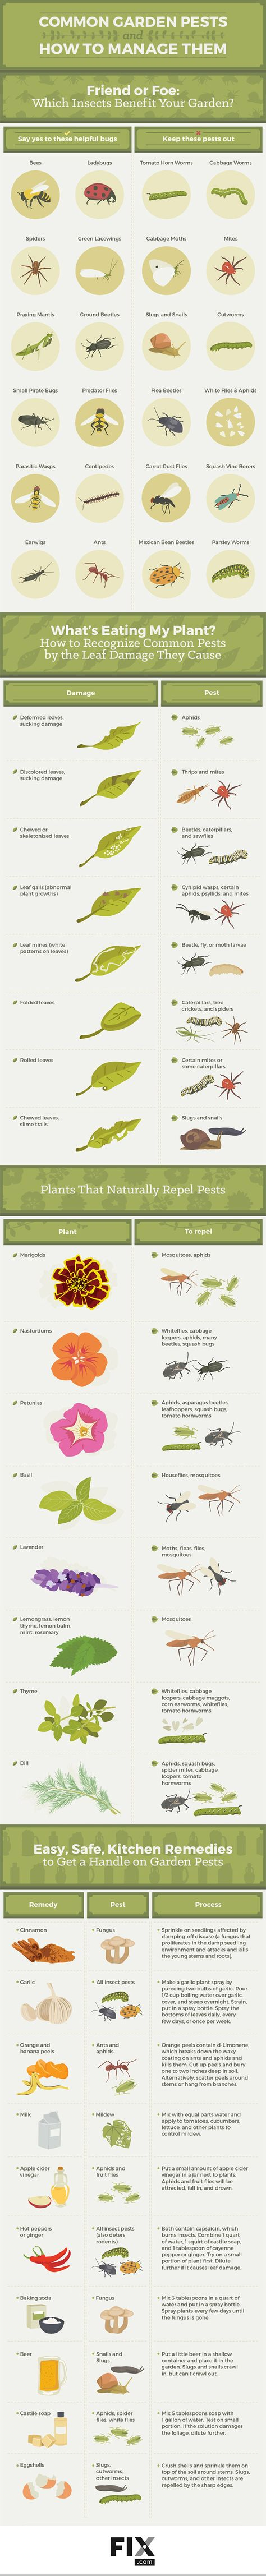 Get those critters out of my garden! We show you how to prevent garden pests from ruining your harvest.